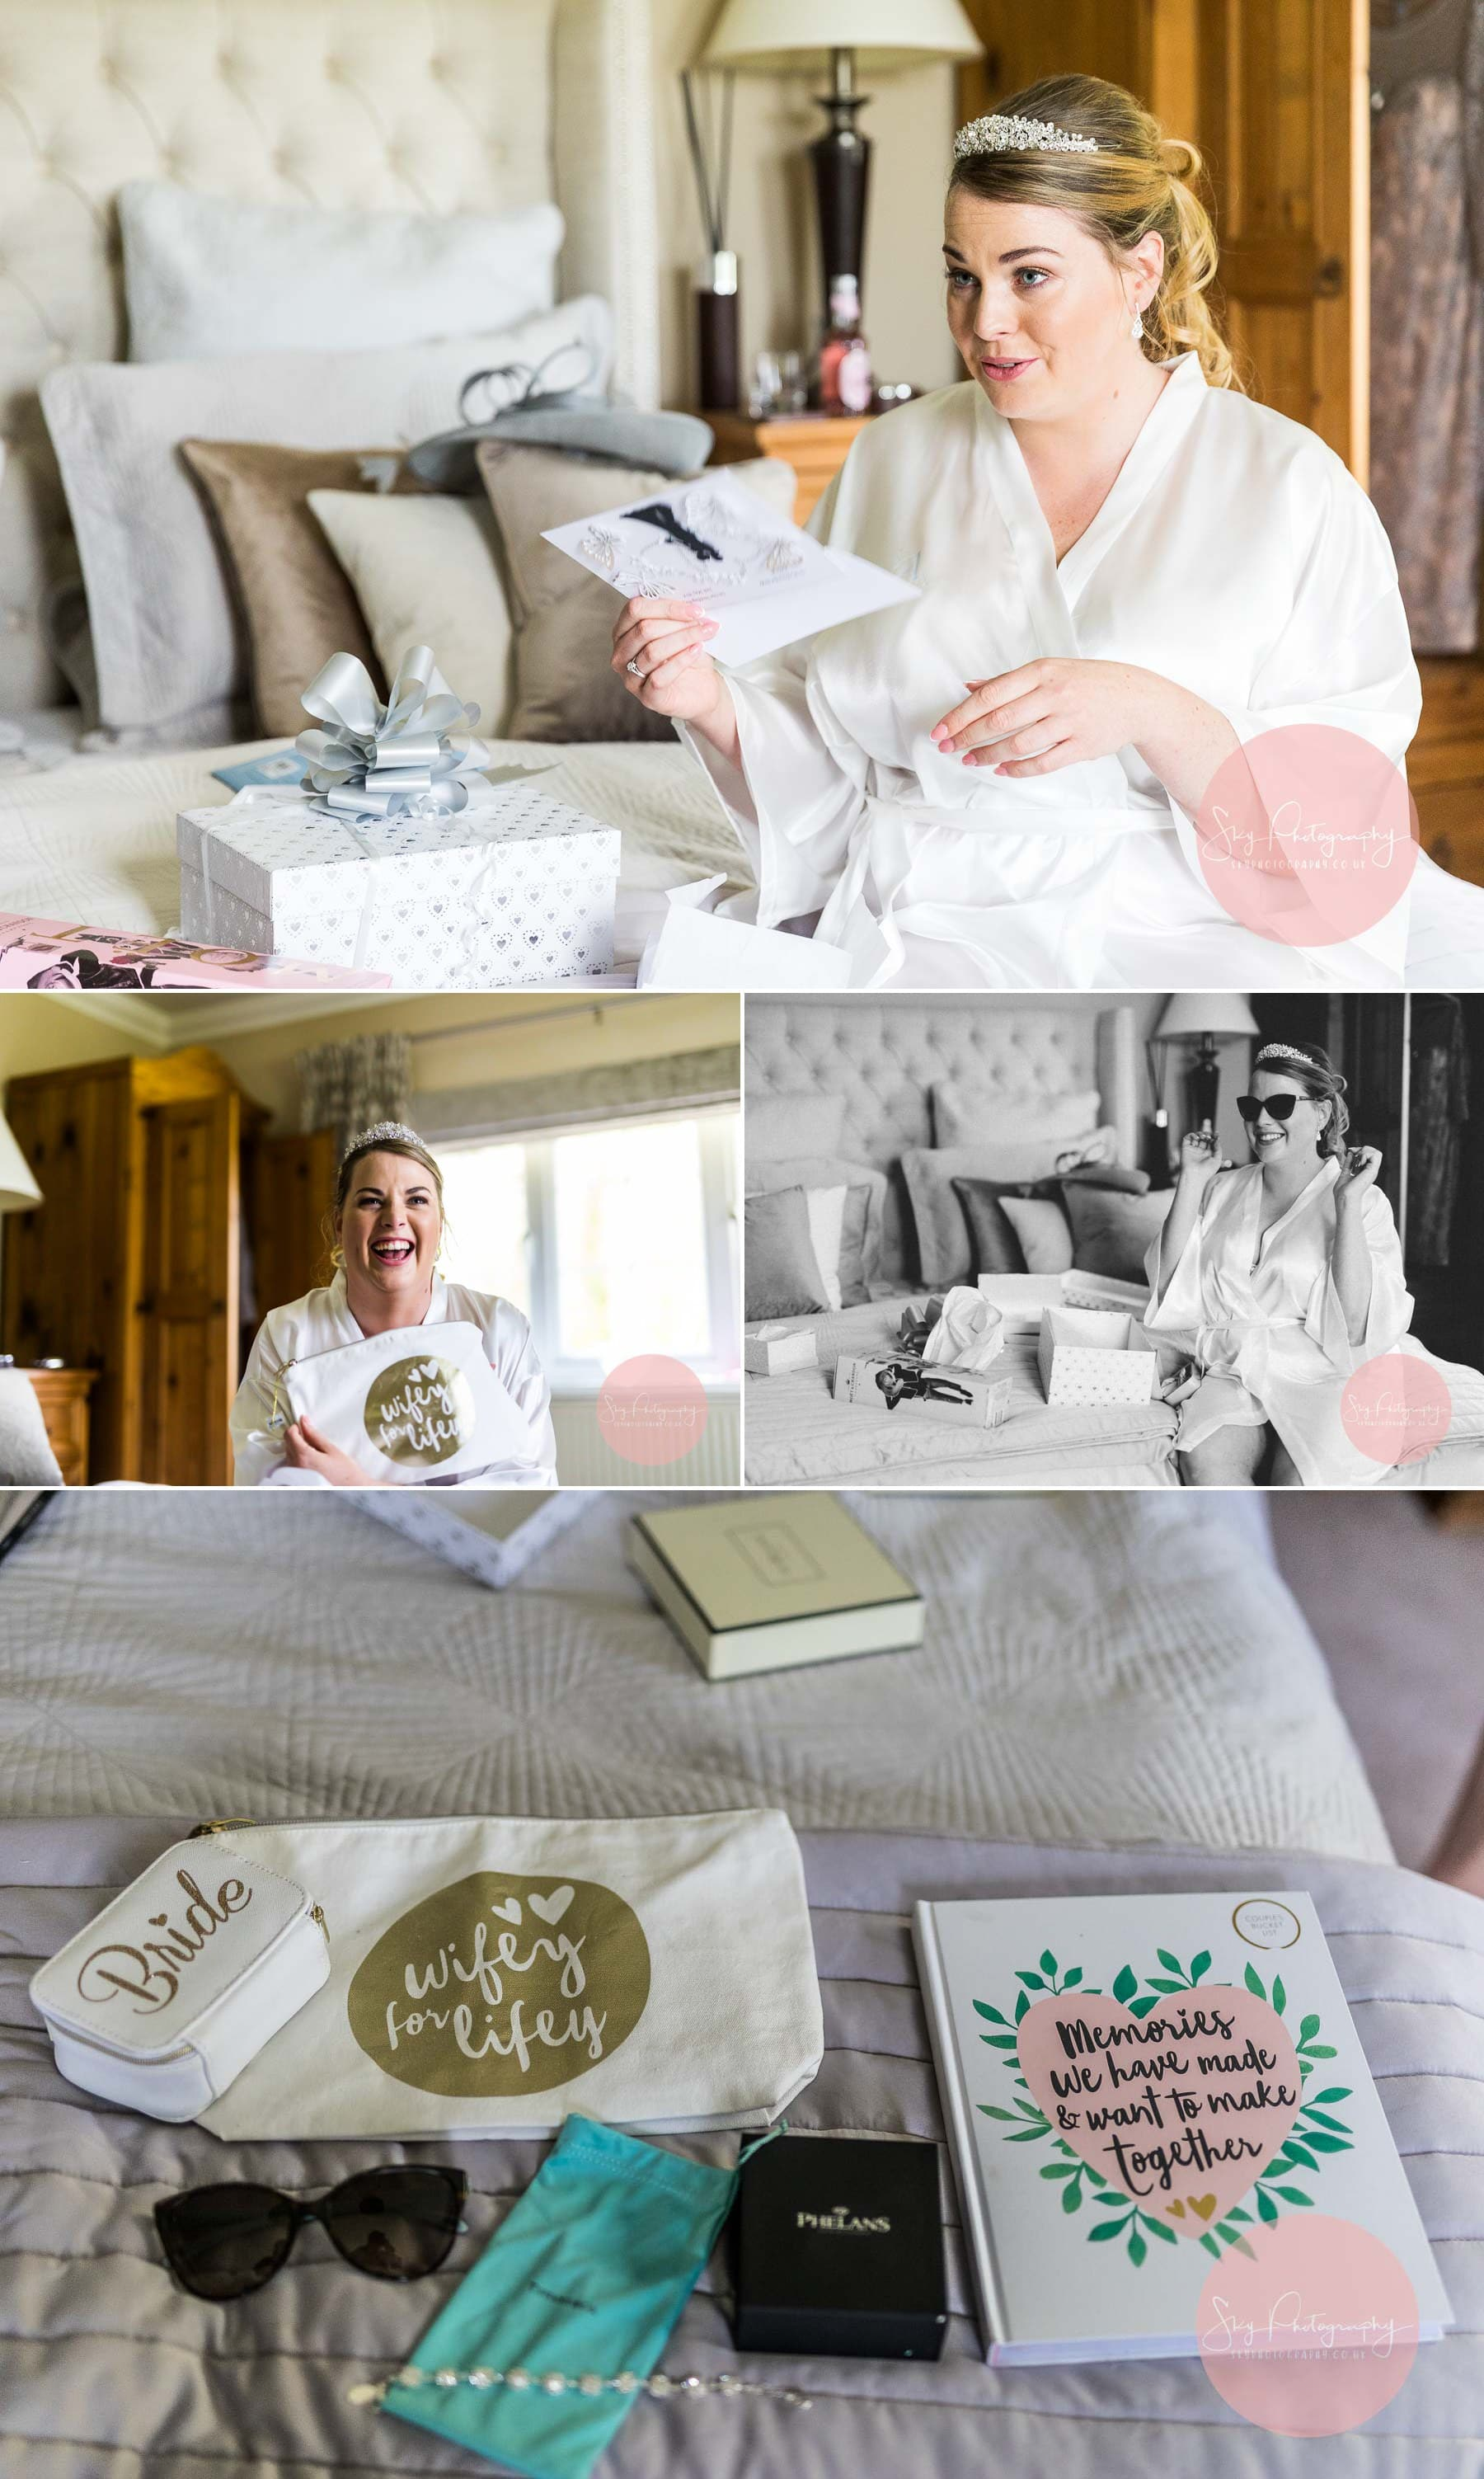 Bride getting emotional after receiving her gifts from her groom to be